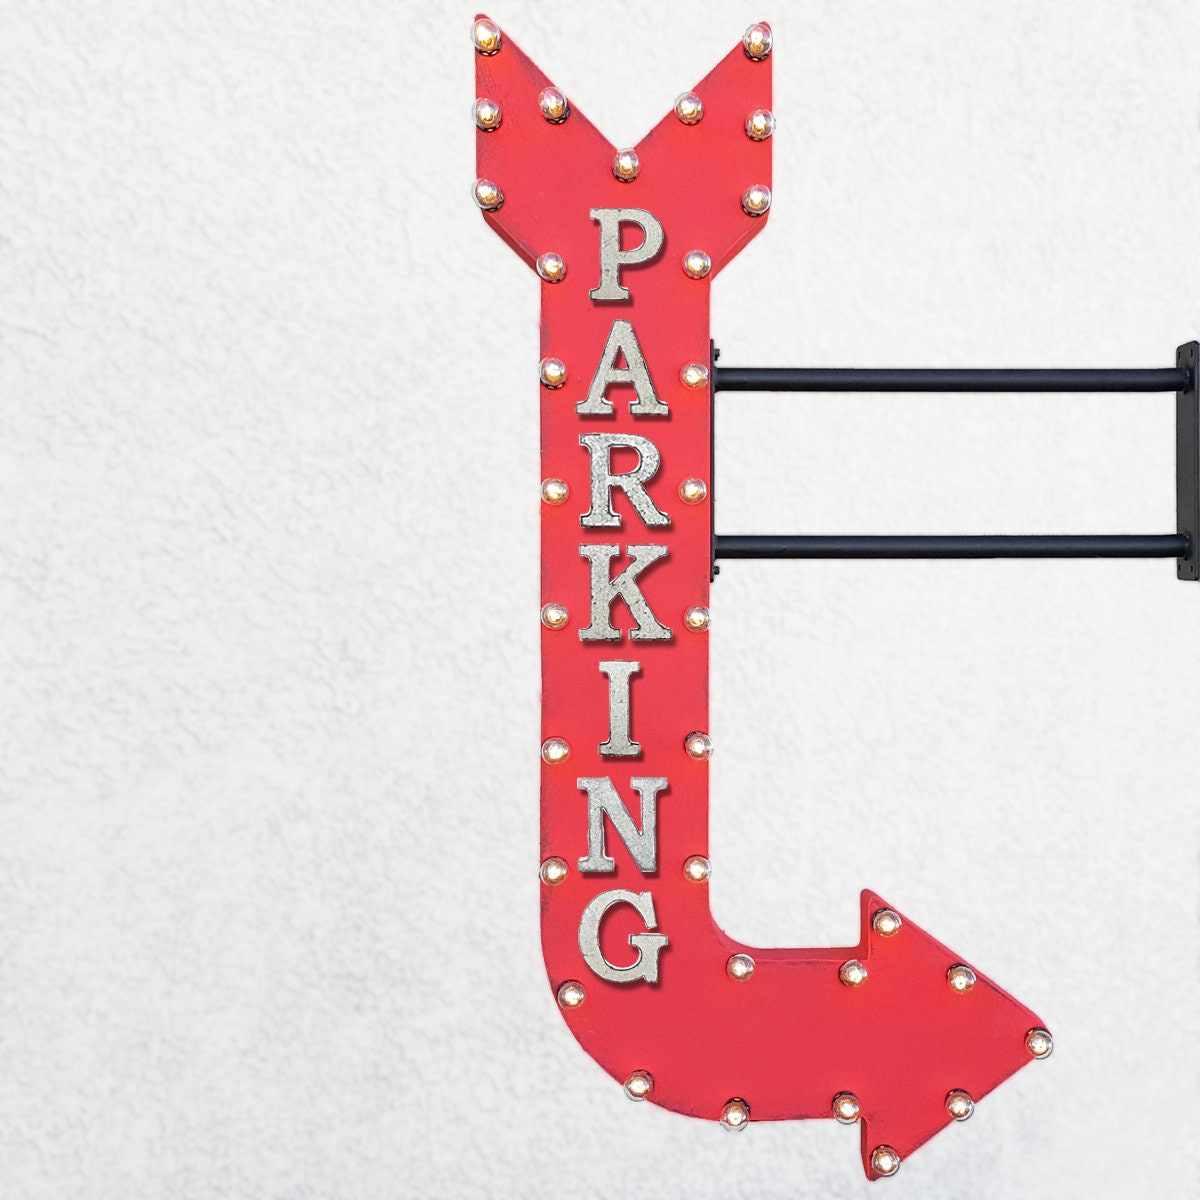 on sale! 48 parking metal arrow sign garage park it pay here car